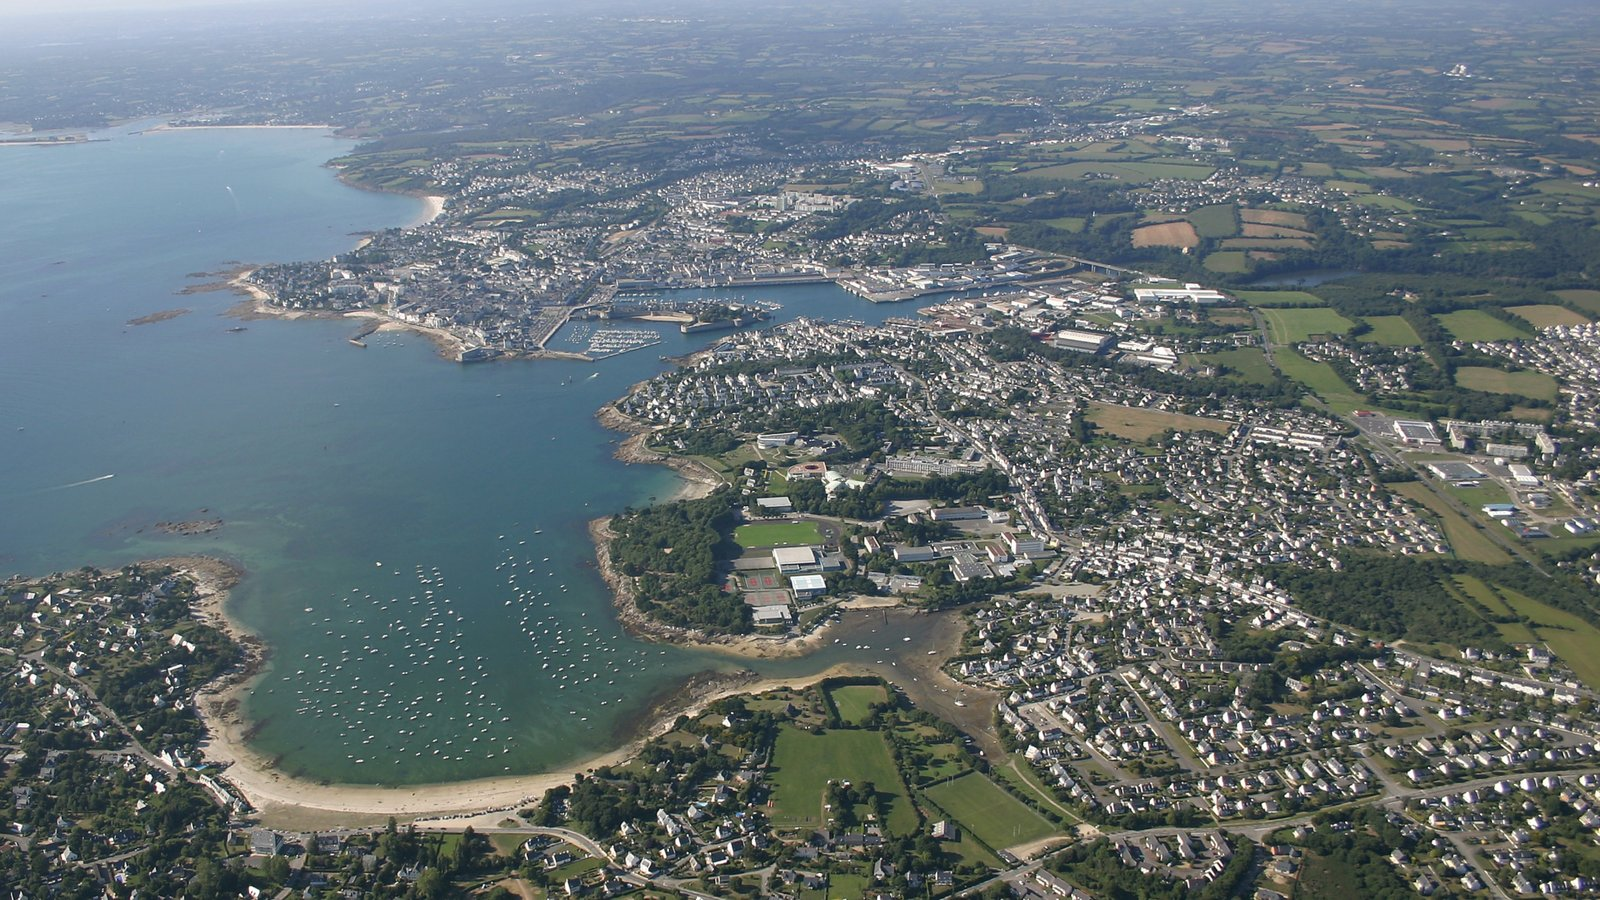 Quimper - Southern Finistere featuring a bay or harbor and a city